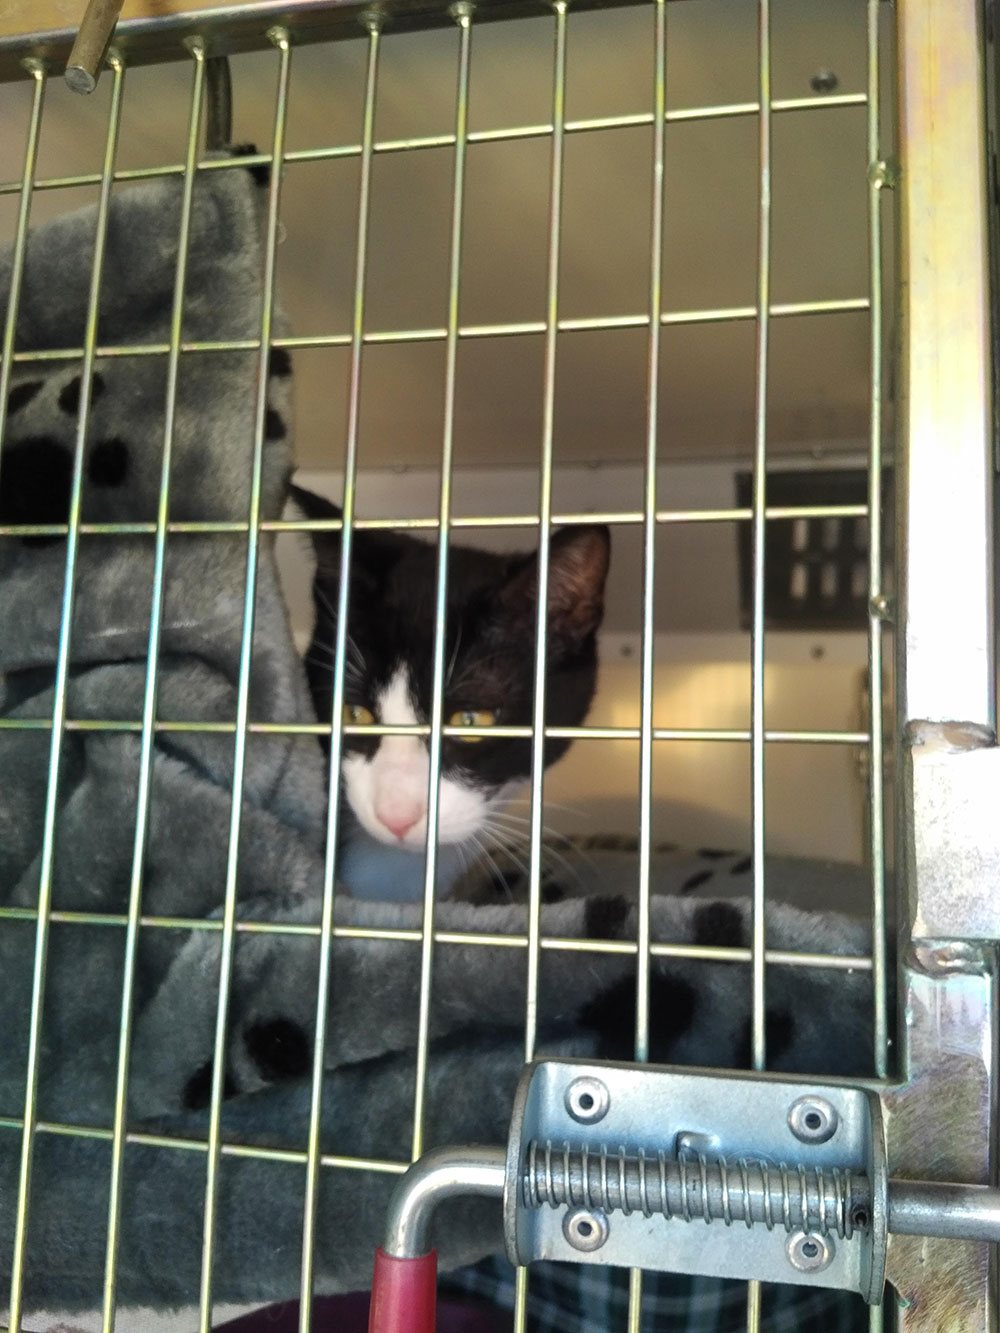 """As the four officers peered into our van, clever Oberon popped his head out of his hammock. """"Bello gato!"""" chorused the officials. Then they saw Sunny and all of the dogs. """"Belli belli!"""" came the unanimous verdict. Proof, if ever it was needed, of the power of cute!"""